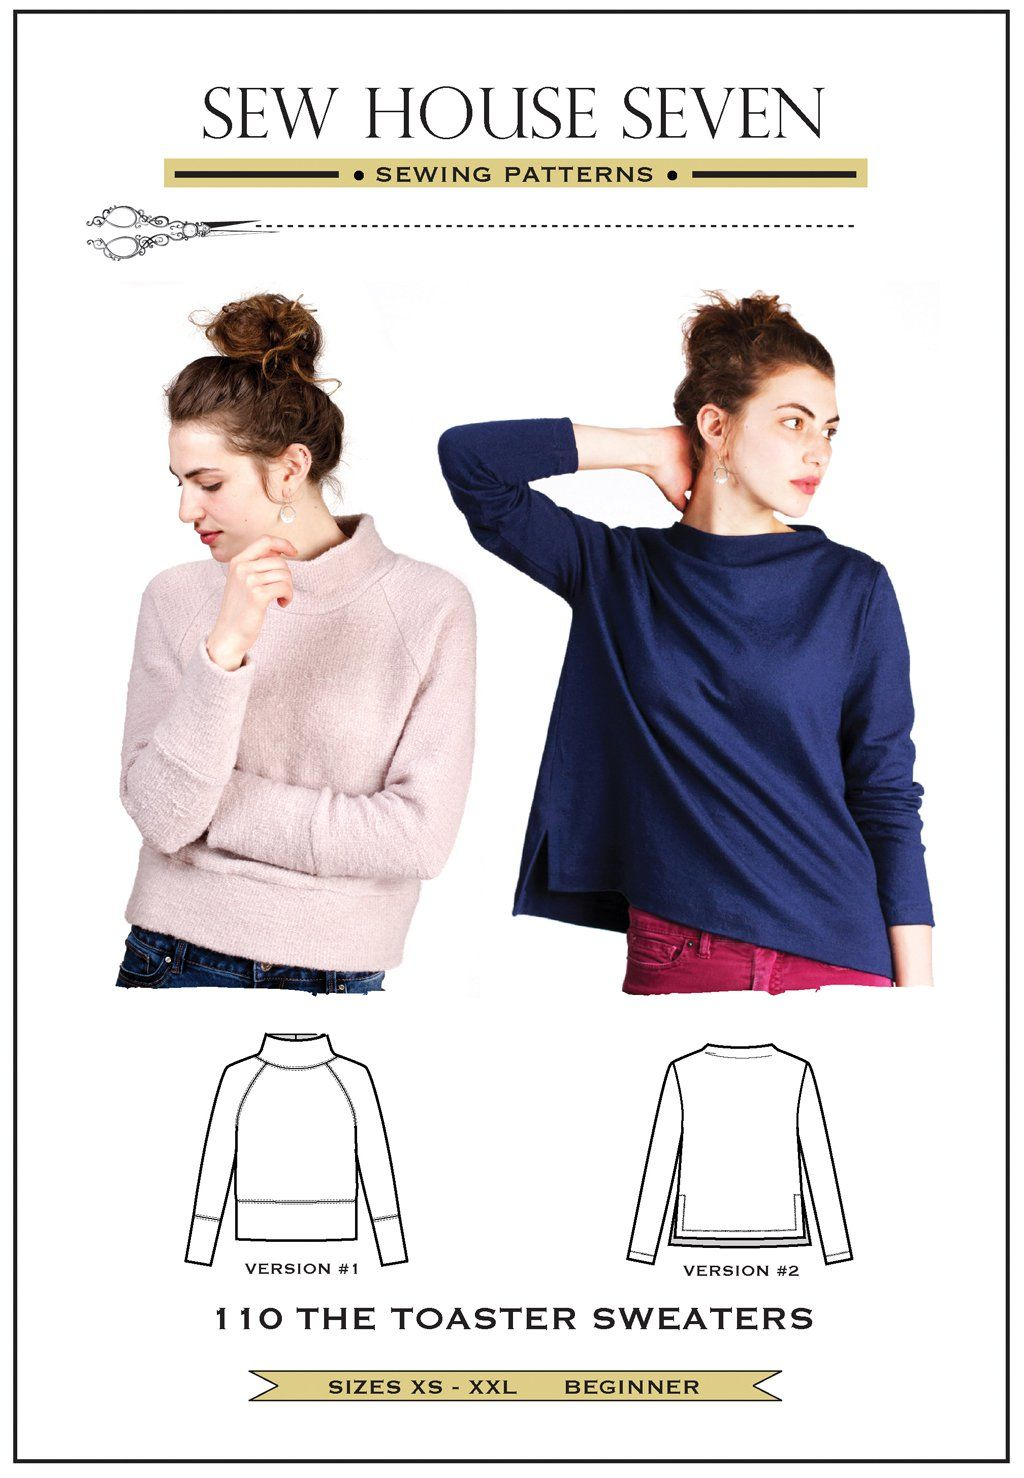 fc5f69e7afd47c Purchase the Sew House Seven 110 Toaster Sweaters sewing pattern and read  its pattern reviews. Find other Tops sewing patterns.